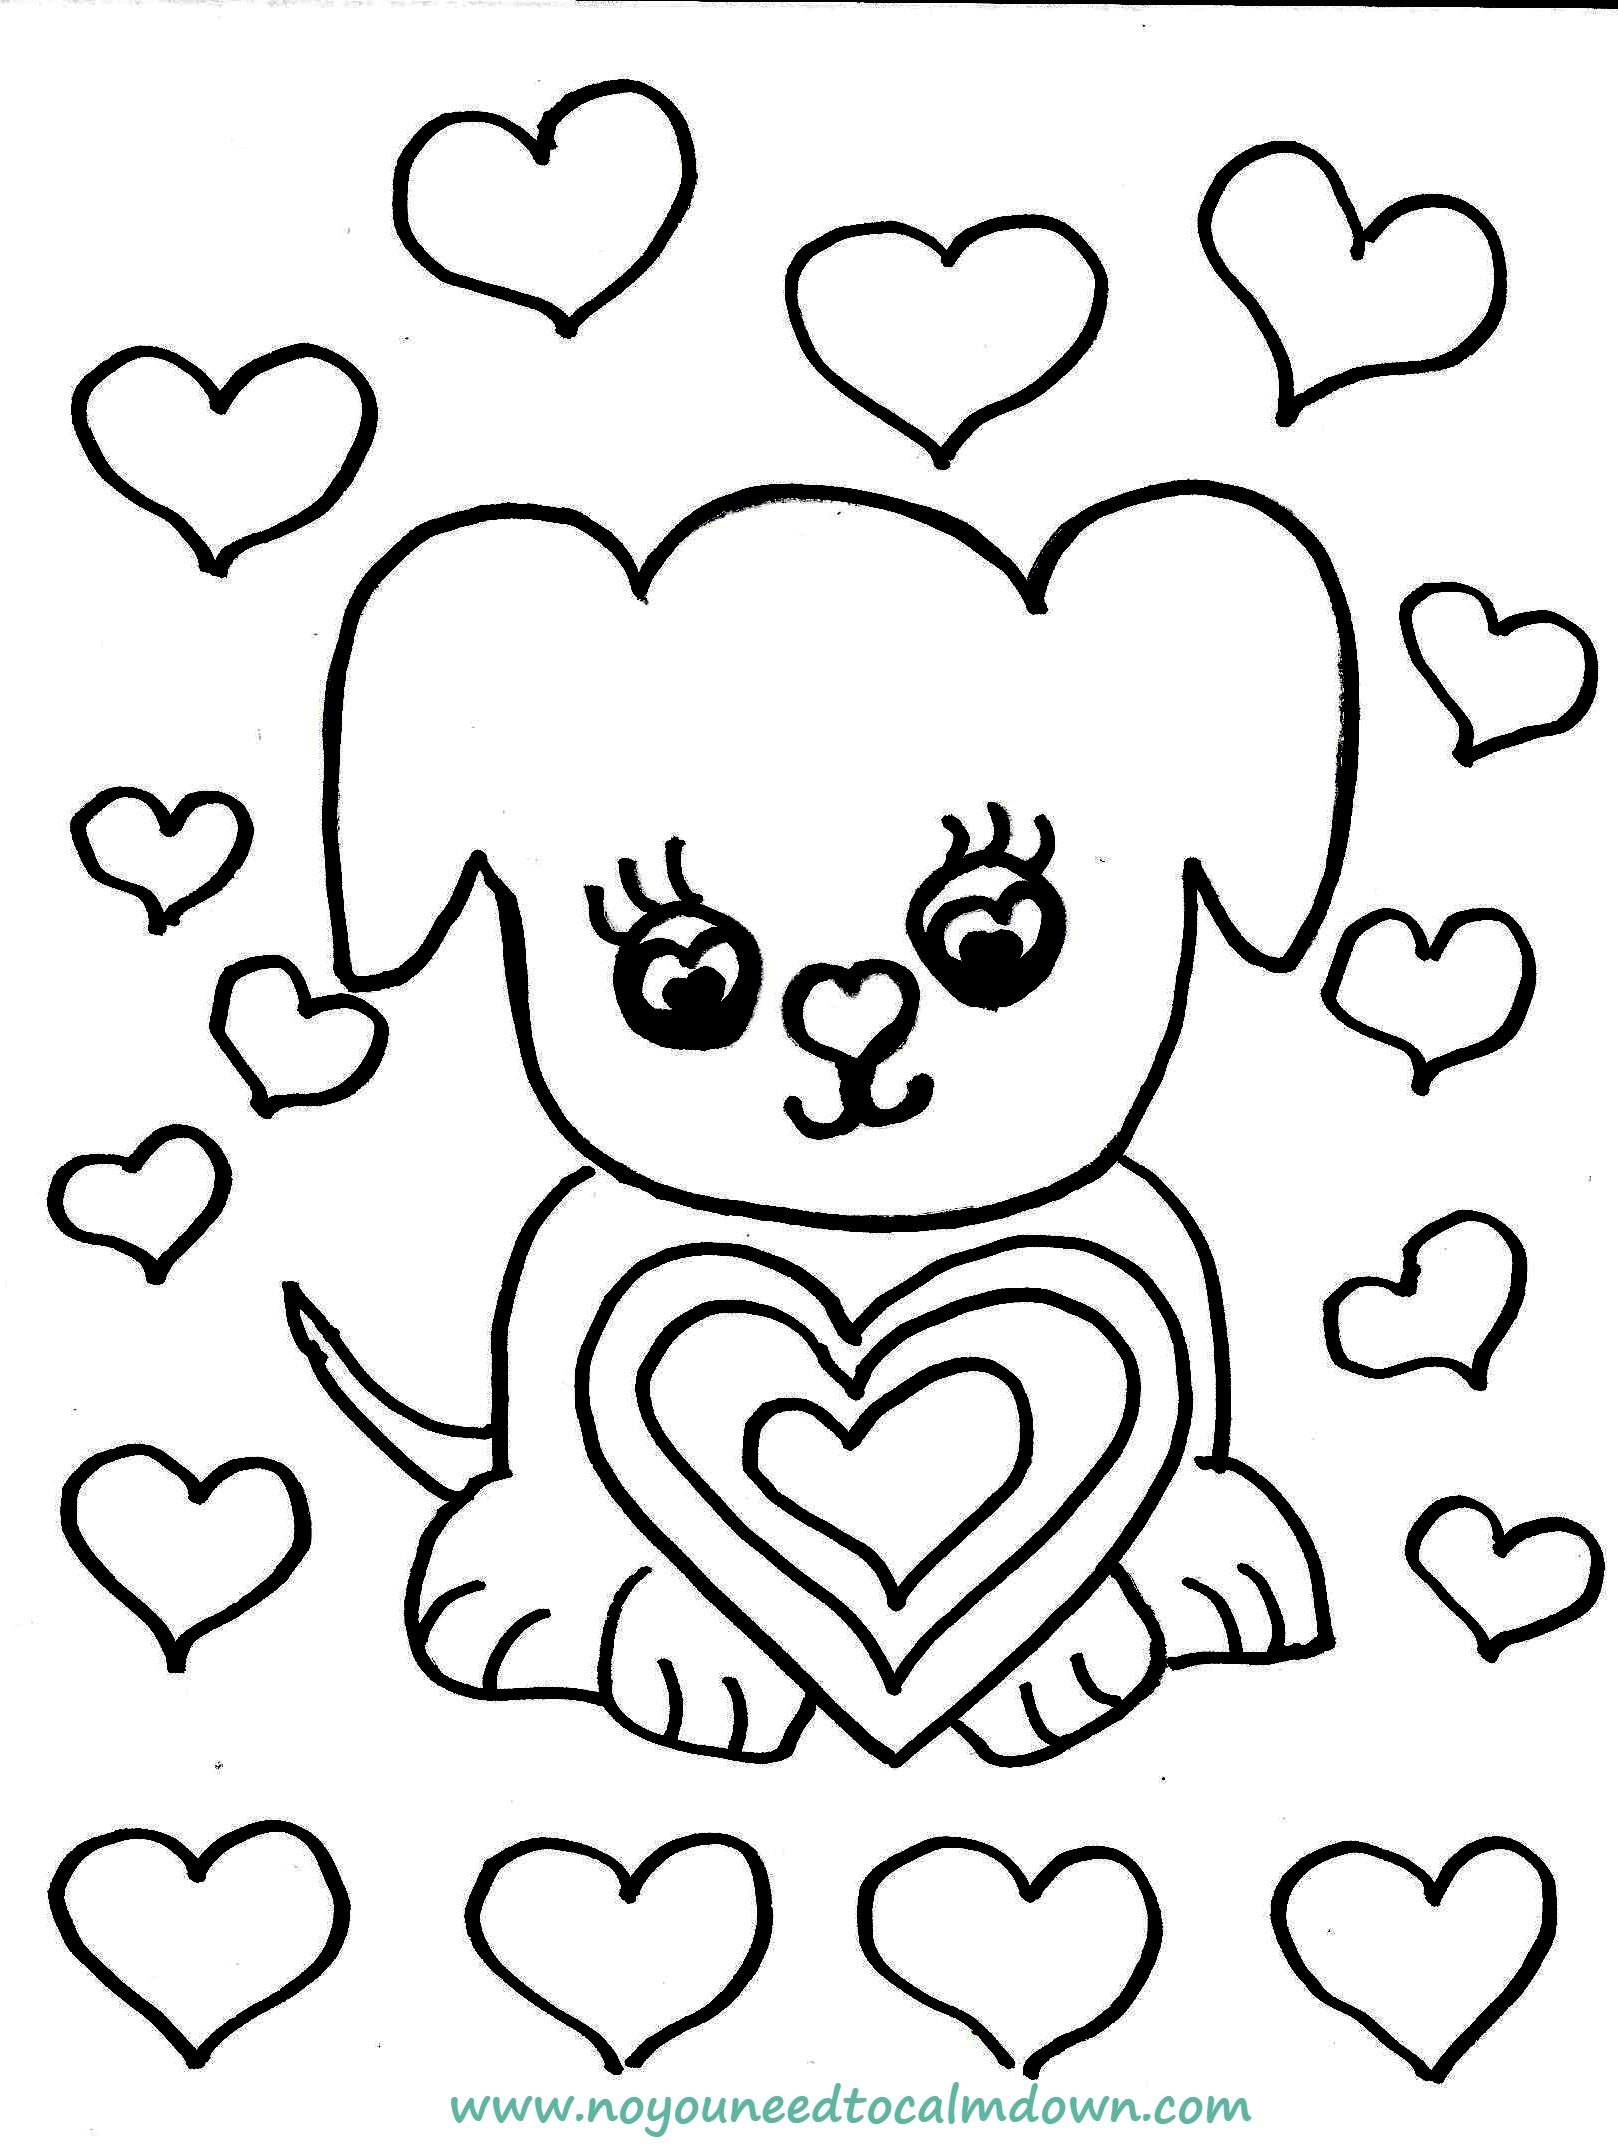 Cute Dog Valentine S Day Coloring Page Free Printable No You Need To Calm Down Valentines Day Coloring Page Valentine Coloring Sheets Valentine Coloring Pages